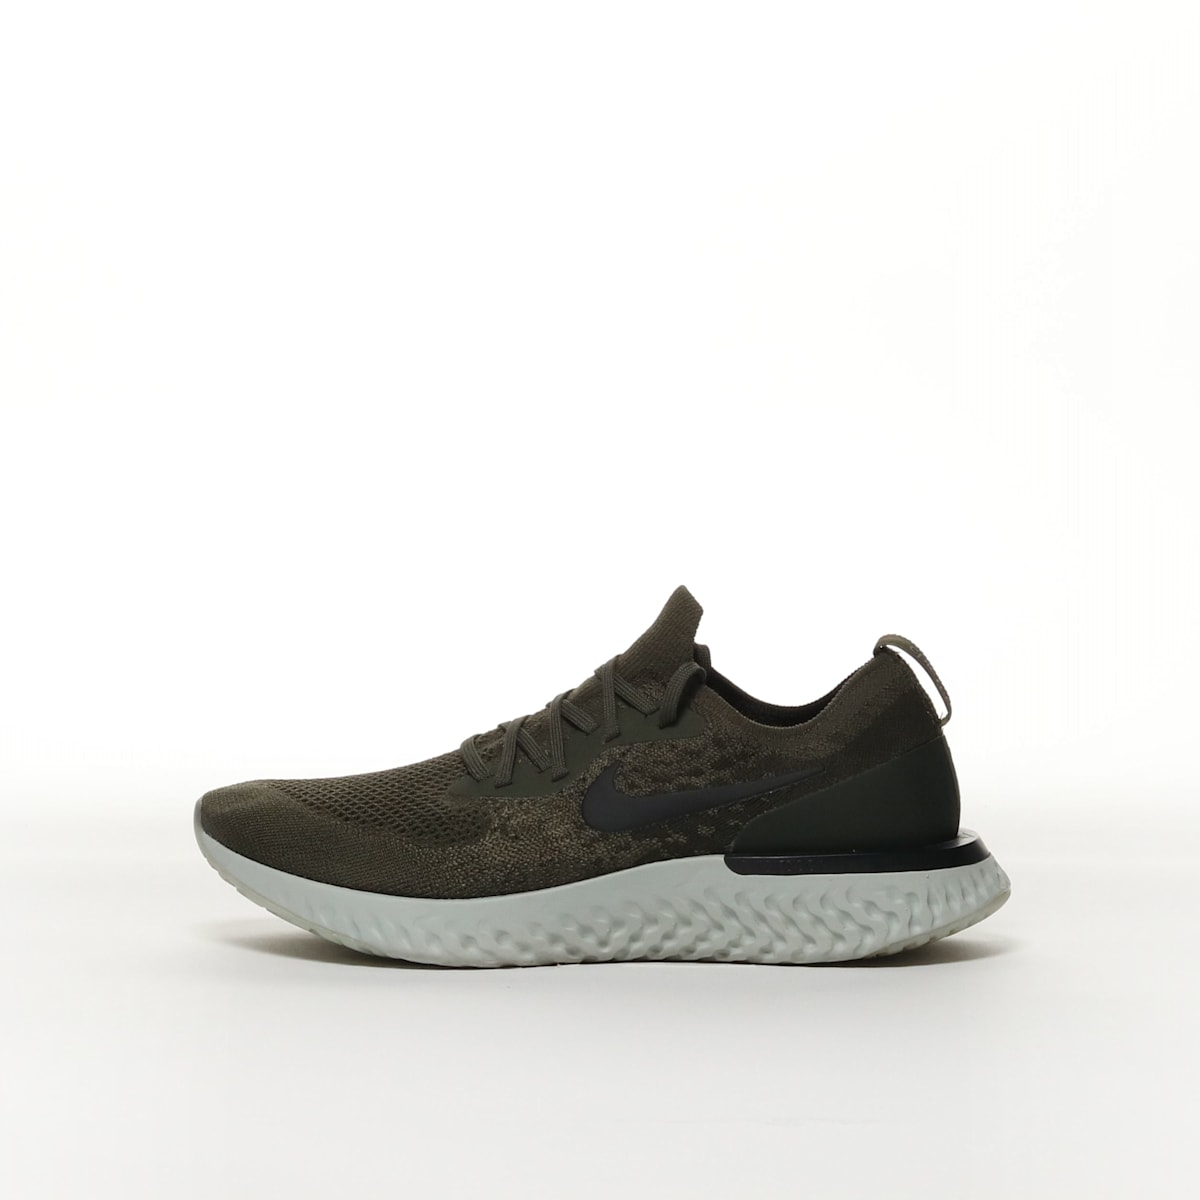 276e389cda56e Nike Epic React Flyknit - CARGO KHAKI CAMPER GREEN HEATHER LIGHT SILVE –  Resku